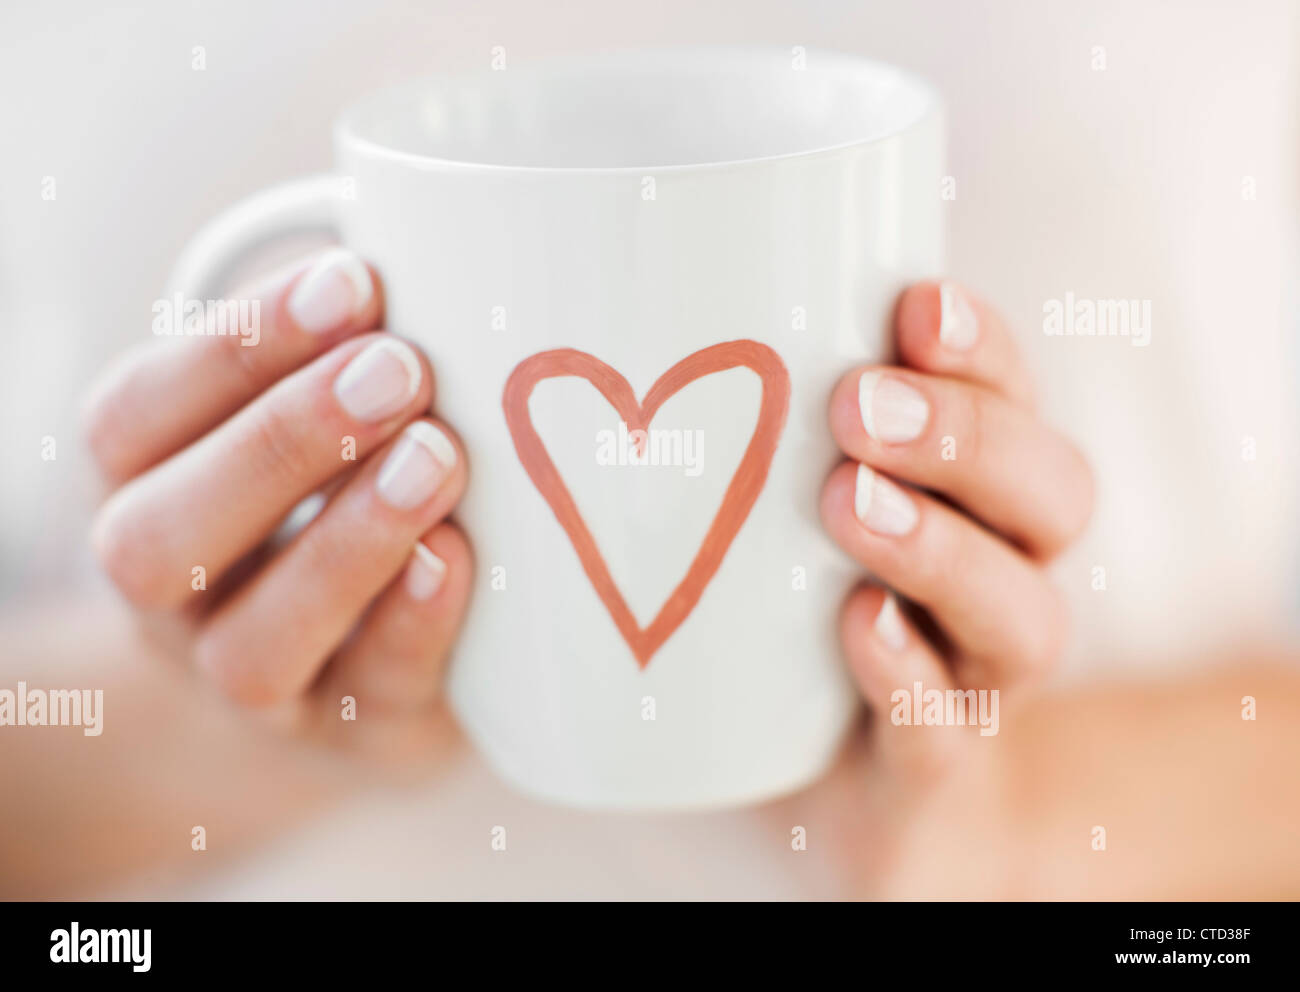 Love  conceptual image - Stock Image